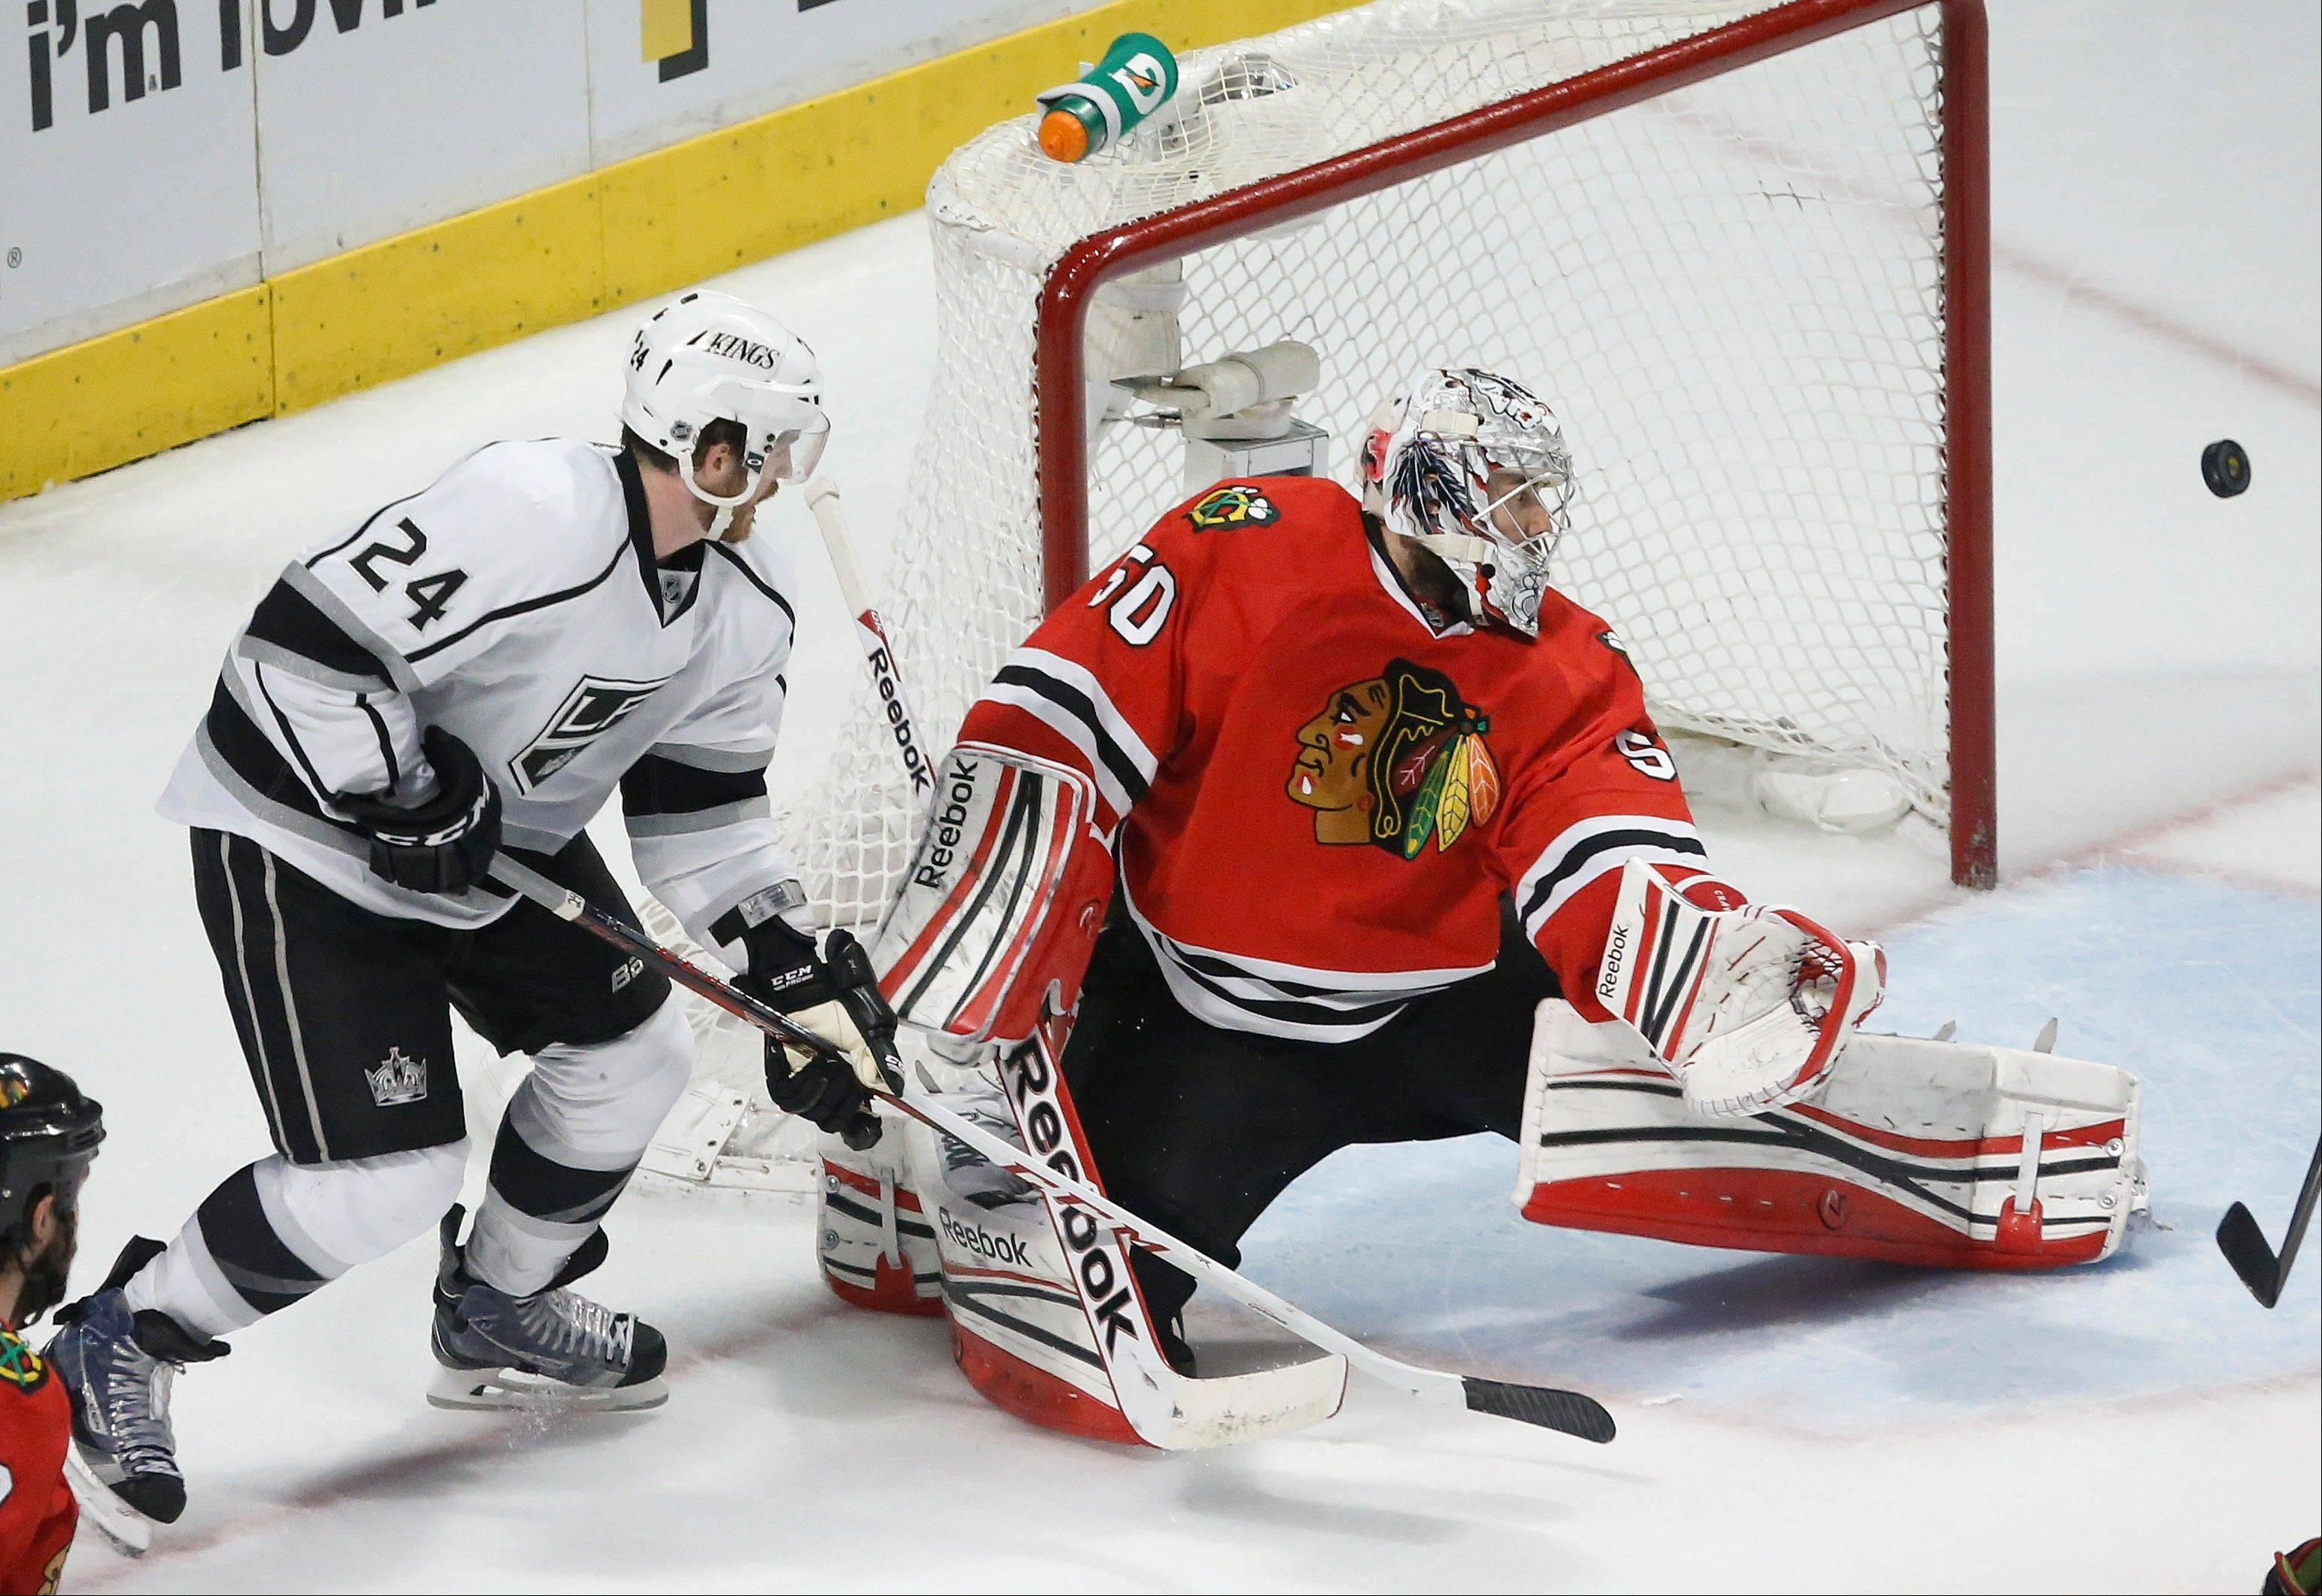 Chicago Blackhawks goalie Corey Crawford (50) defects a shot by Los Angeles Kings center Colin Fraser (24) during the second period in Game 1 of the NHL hockey Stanley Cup Western Conference finals Saturday, June 1, 2013, in Chicago.